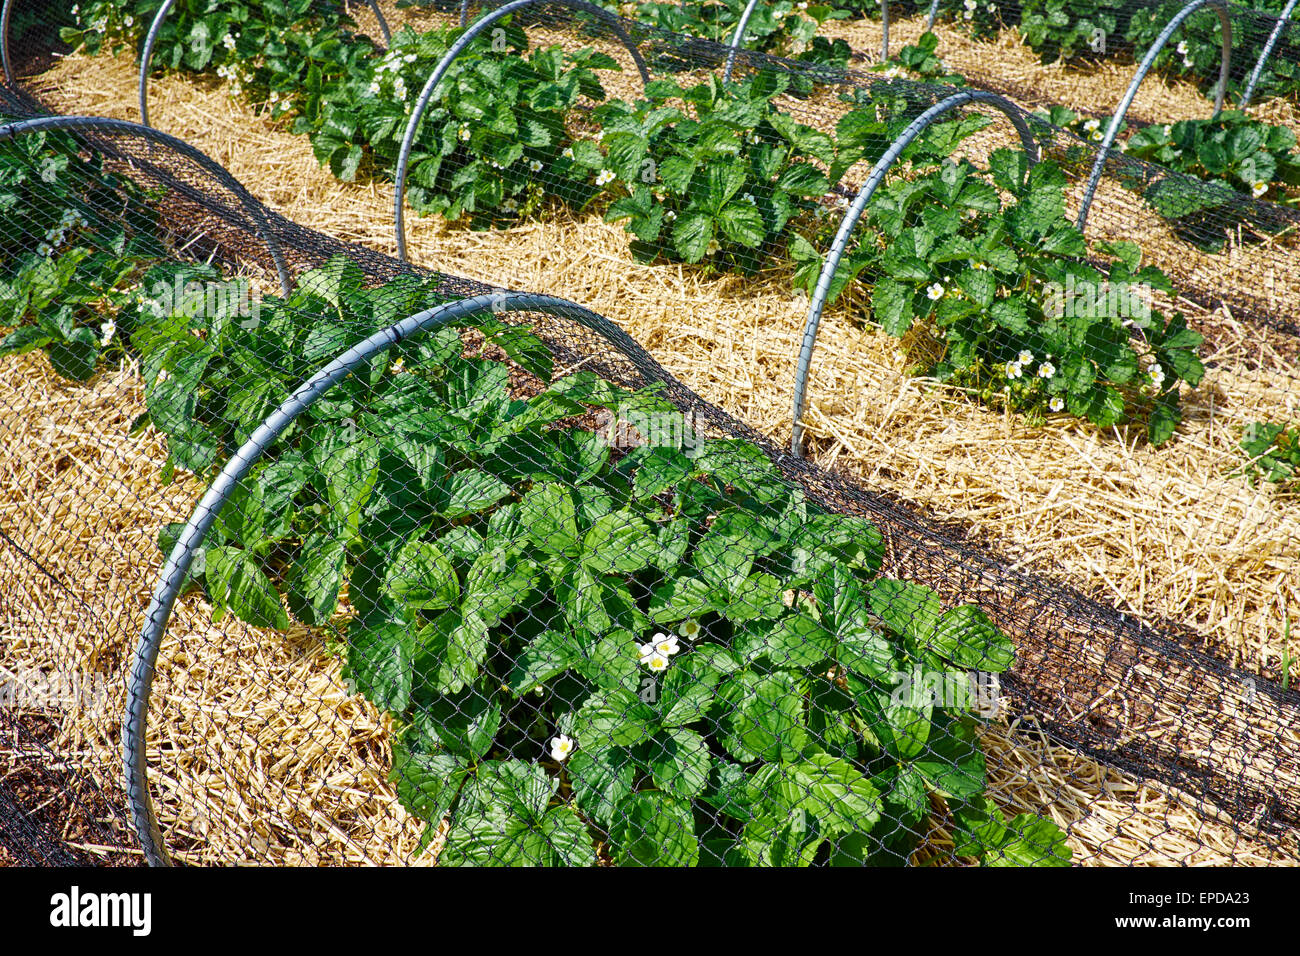 Strawberry Plants Growing Stock Photos & Strawberry Plants Growing ...